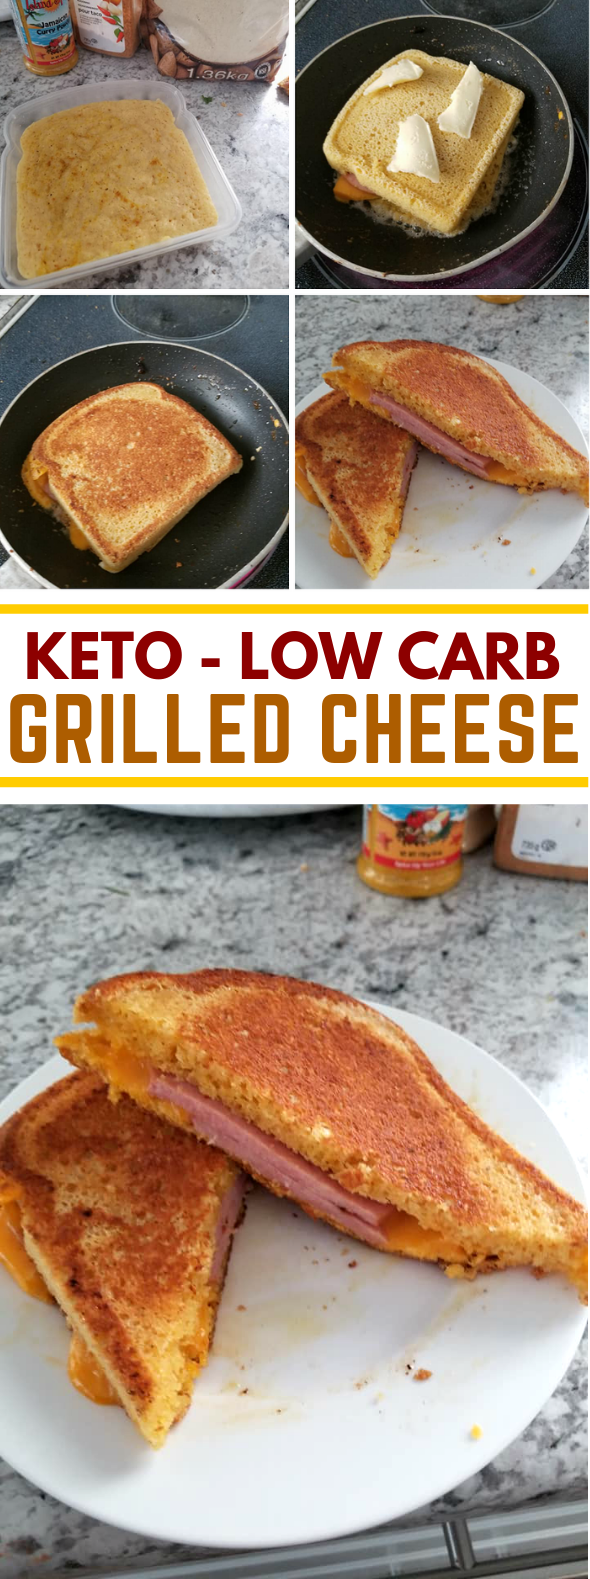 Keto Low Carb Grilled Cheese #ketodiet #lunch